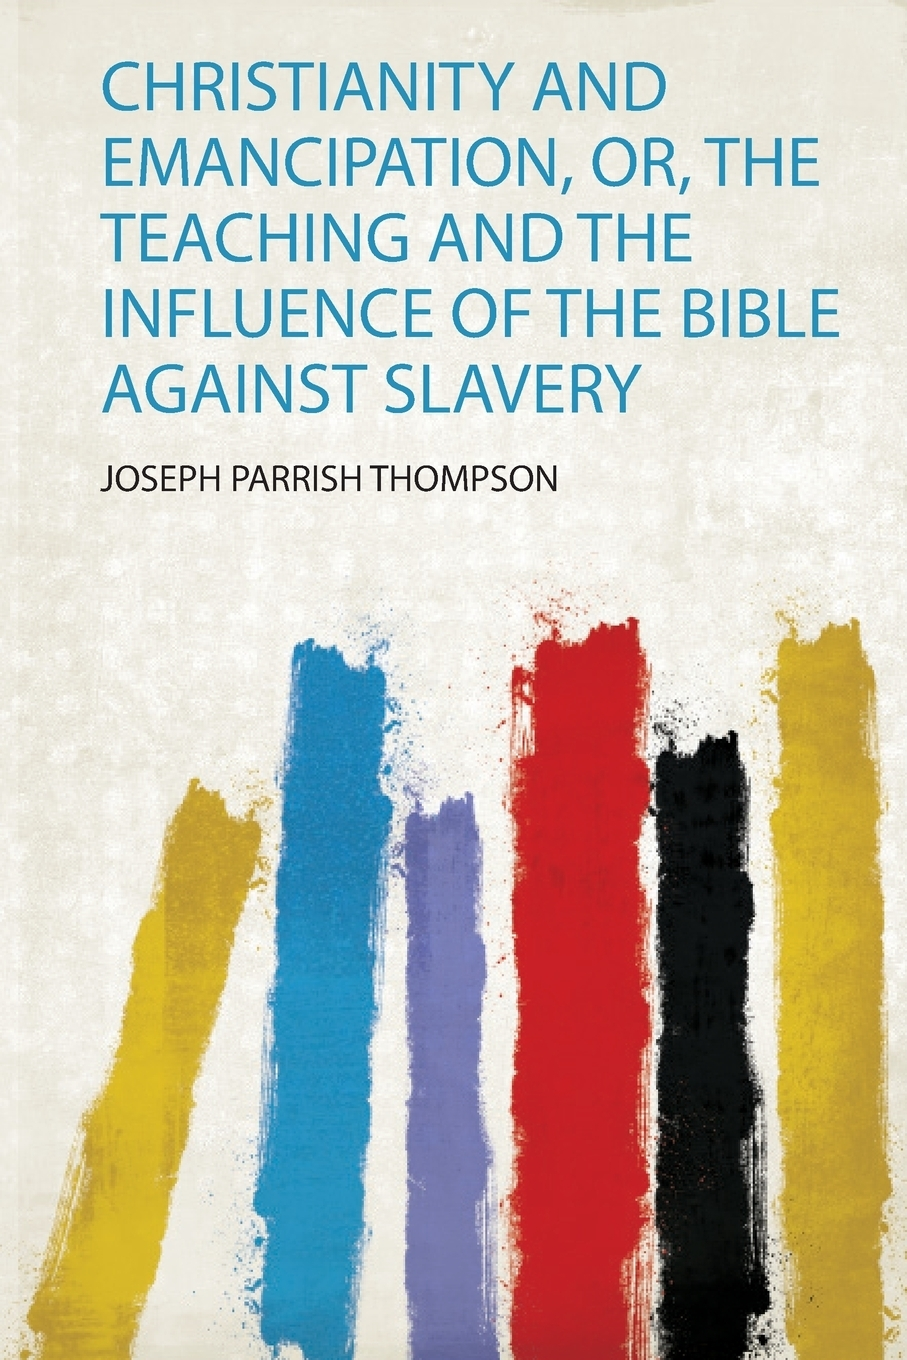 Christianity and Emancipation, Or, the Teaching and the Influence of the Bible Against Slavery